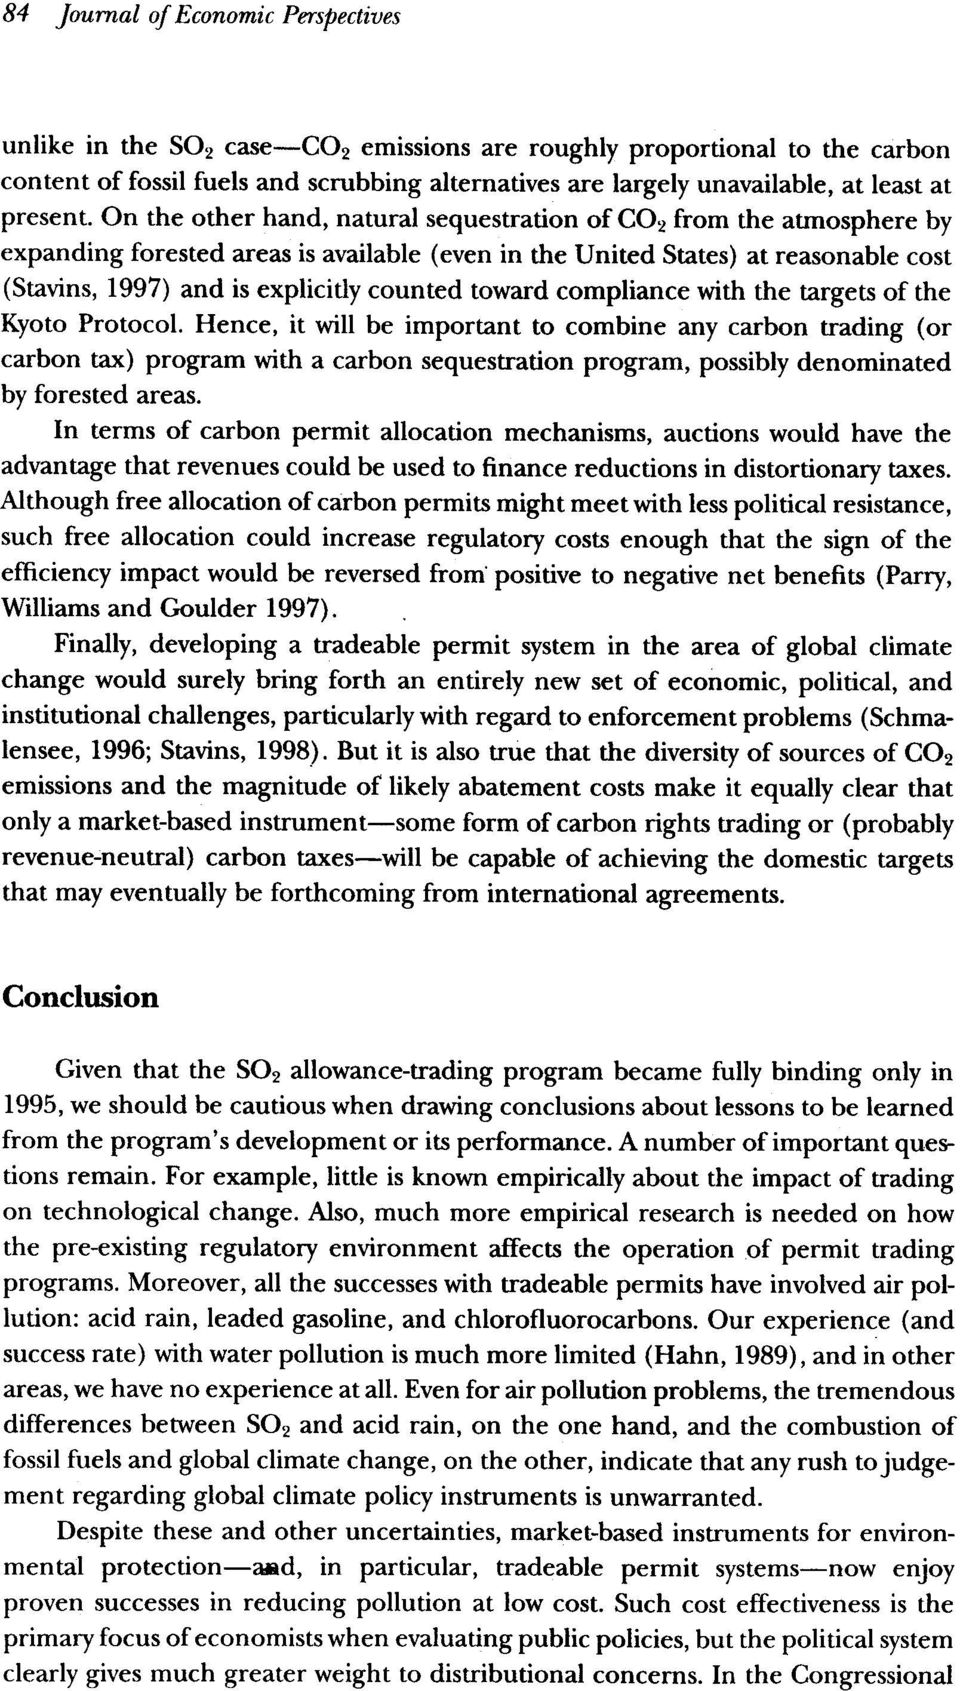 On the other hand, natural sequestration of CO2 from the atmosphere by expanding forested areas is available (even in the United States) at reasonable cost (Stavins, 1997) and is explicitly counted